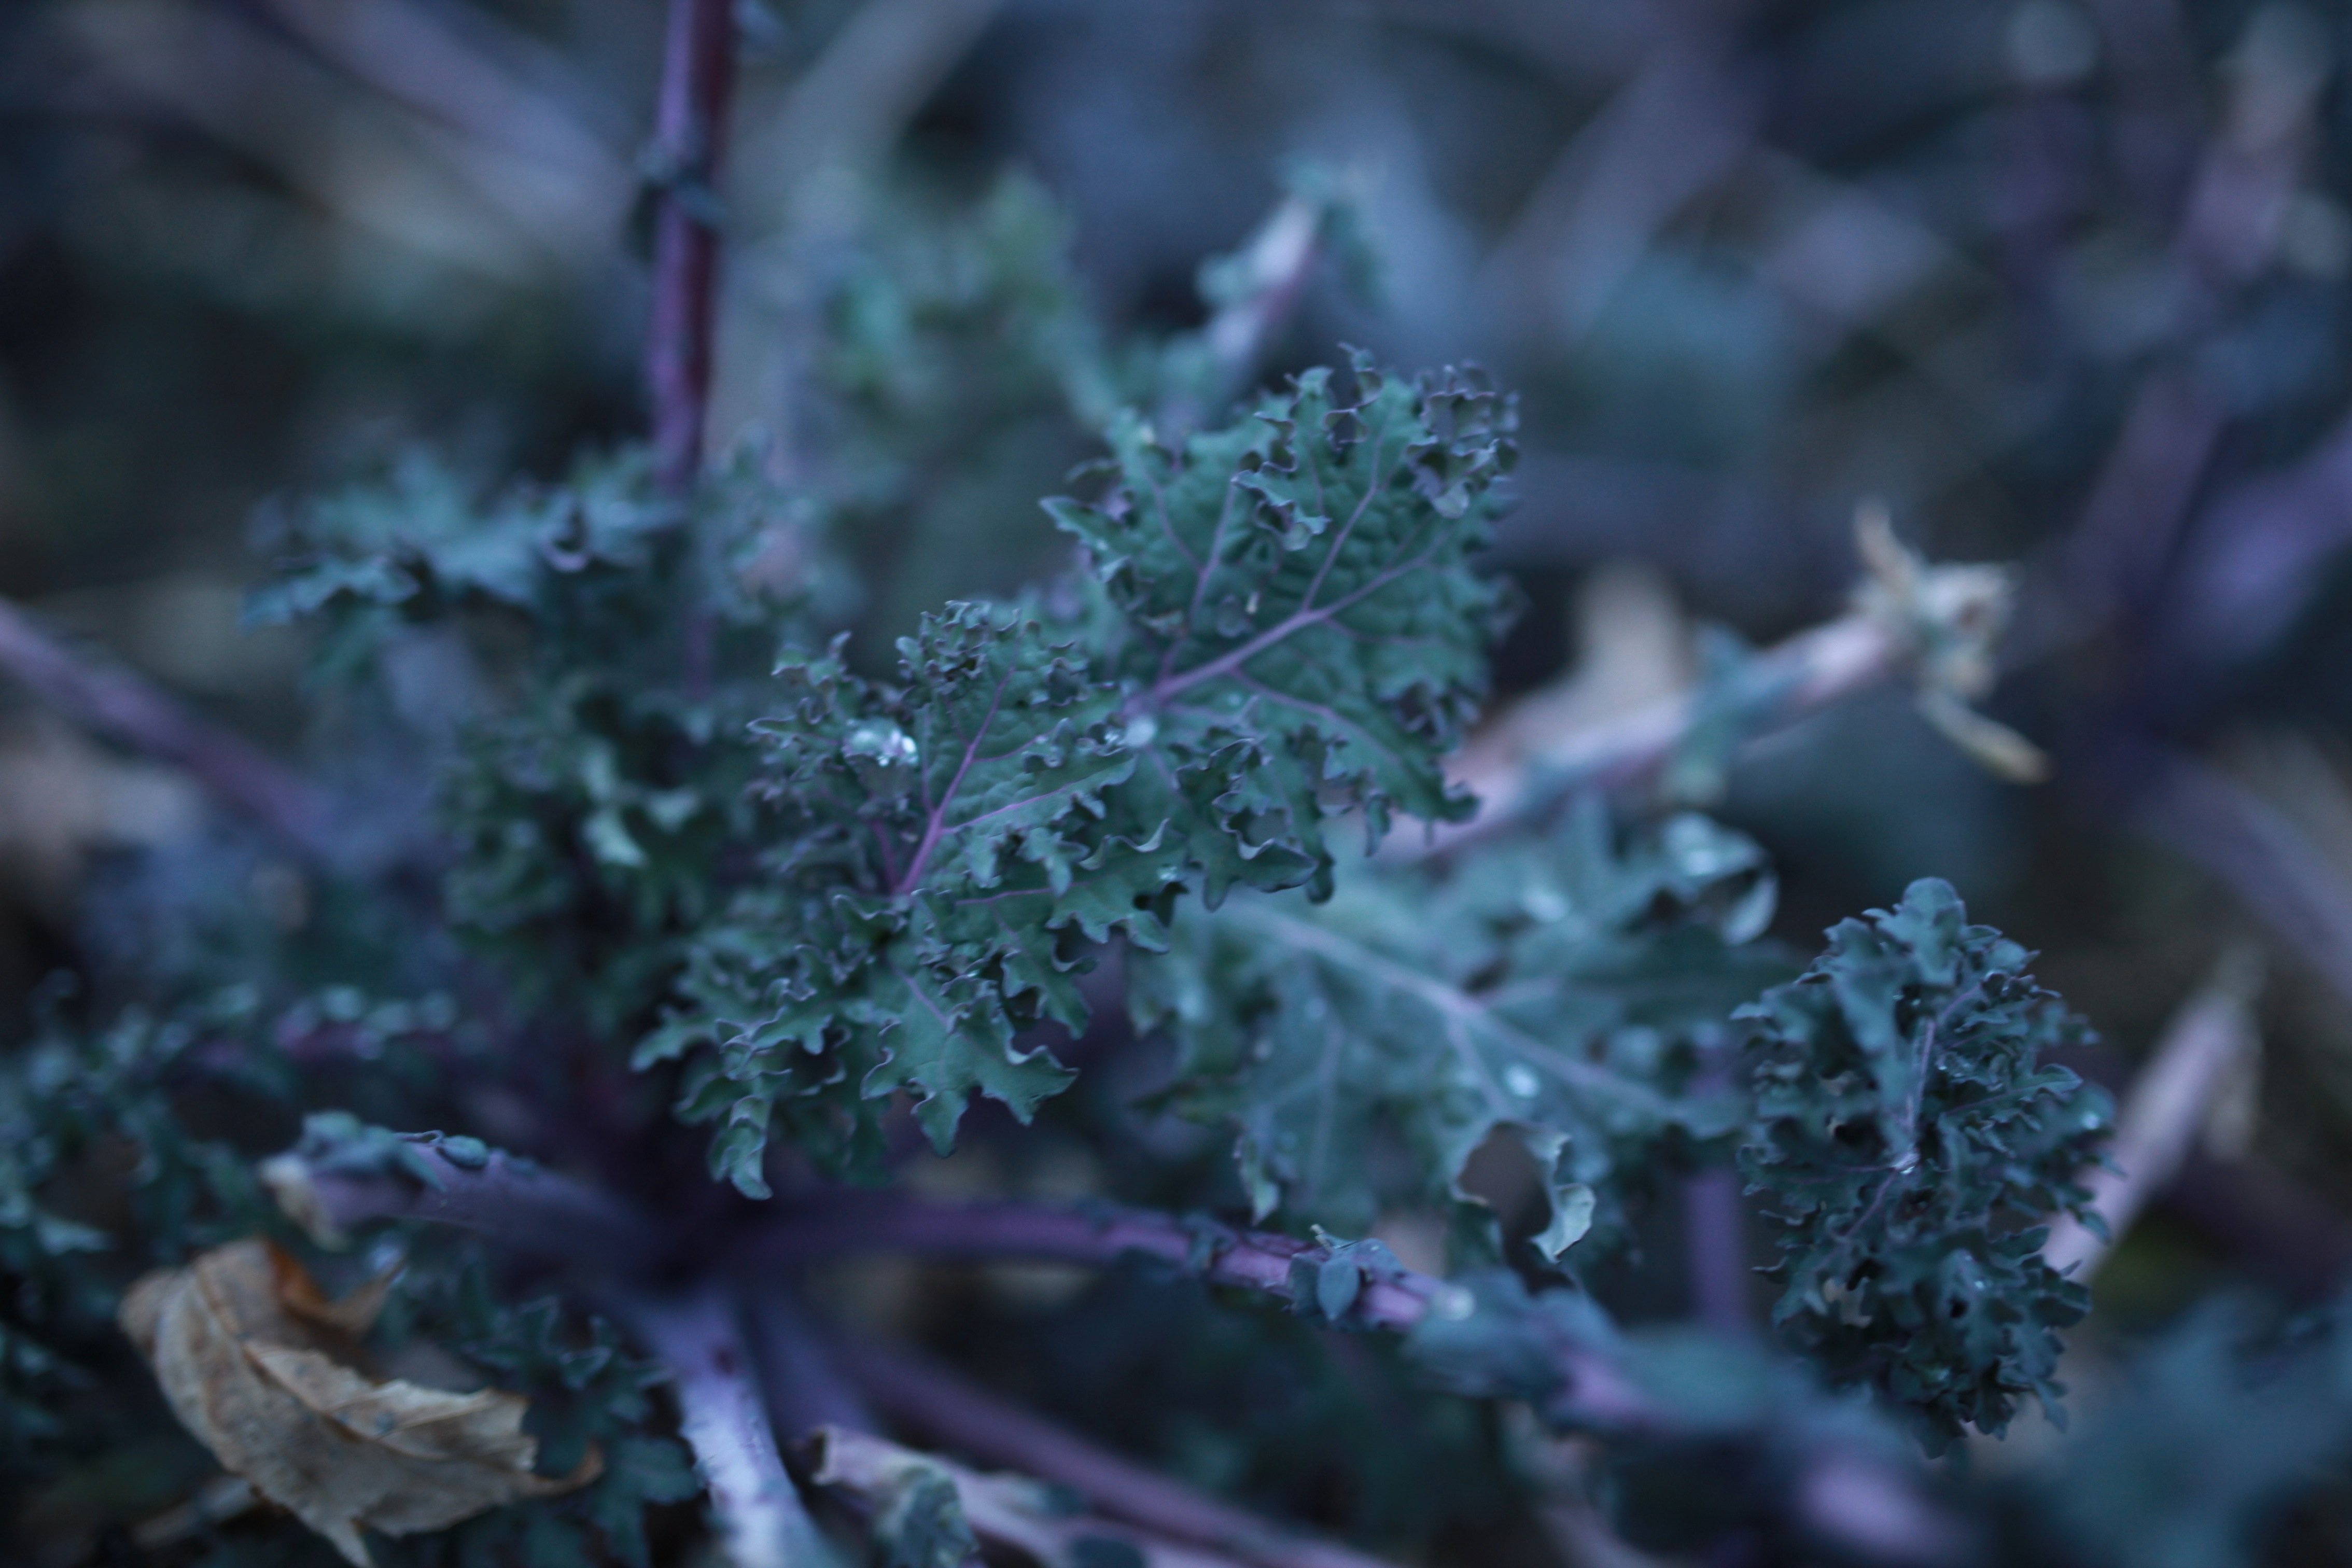 Kale in Nov